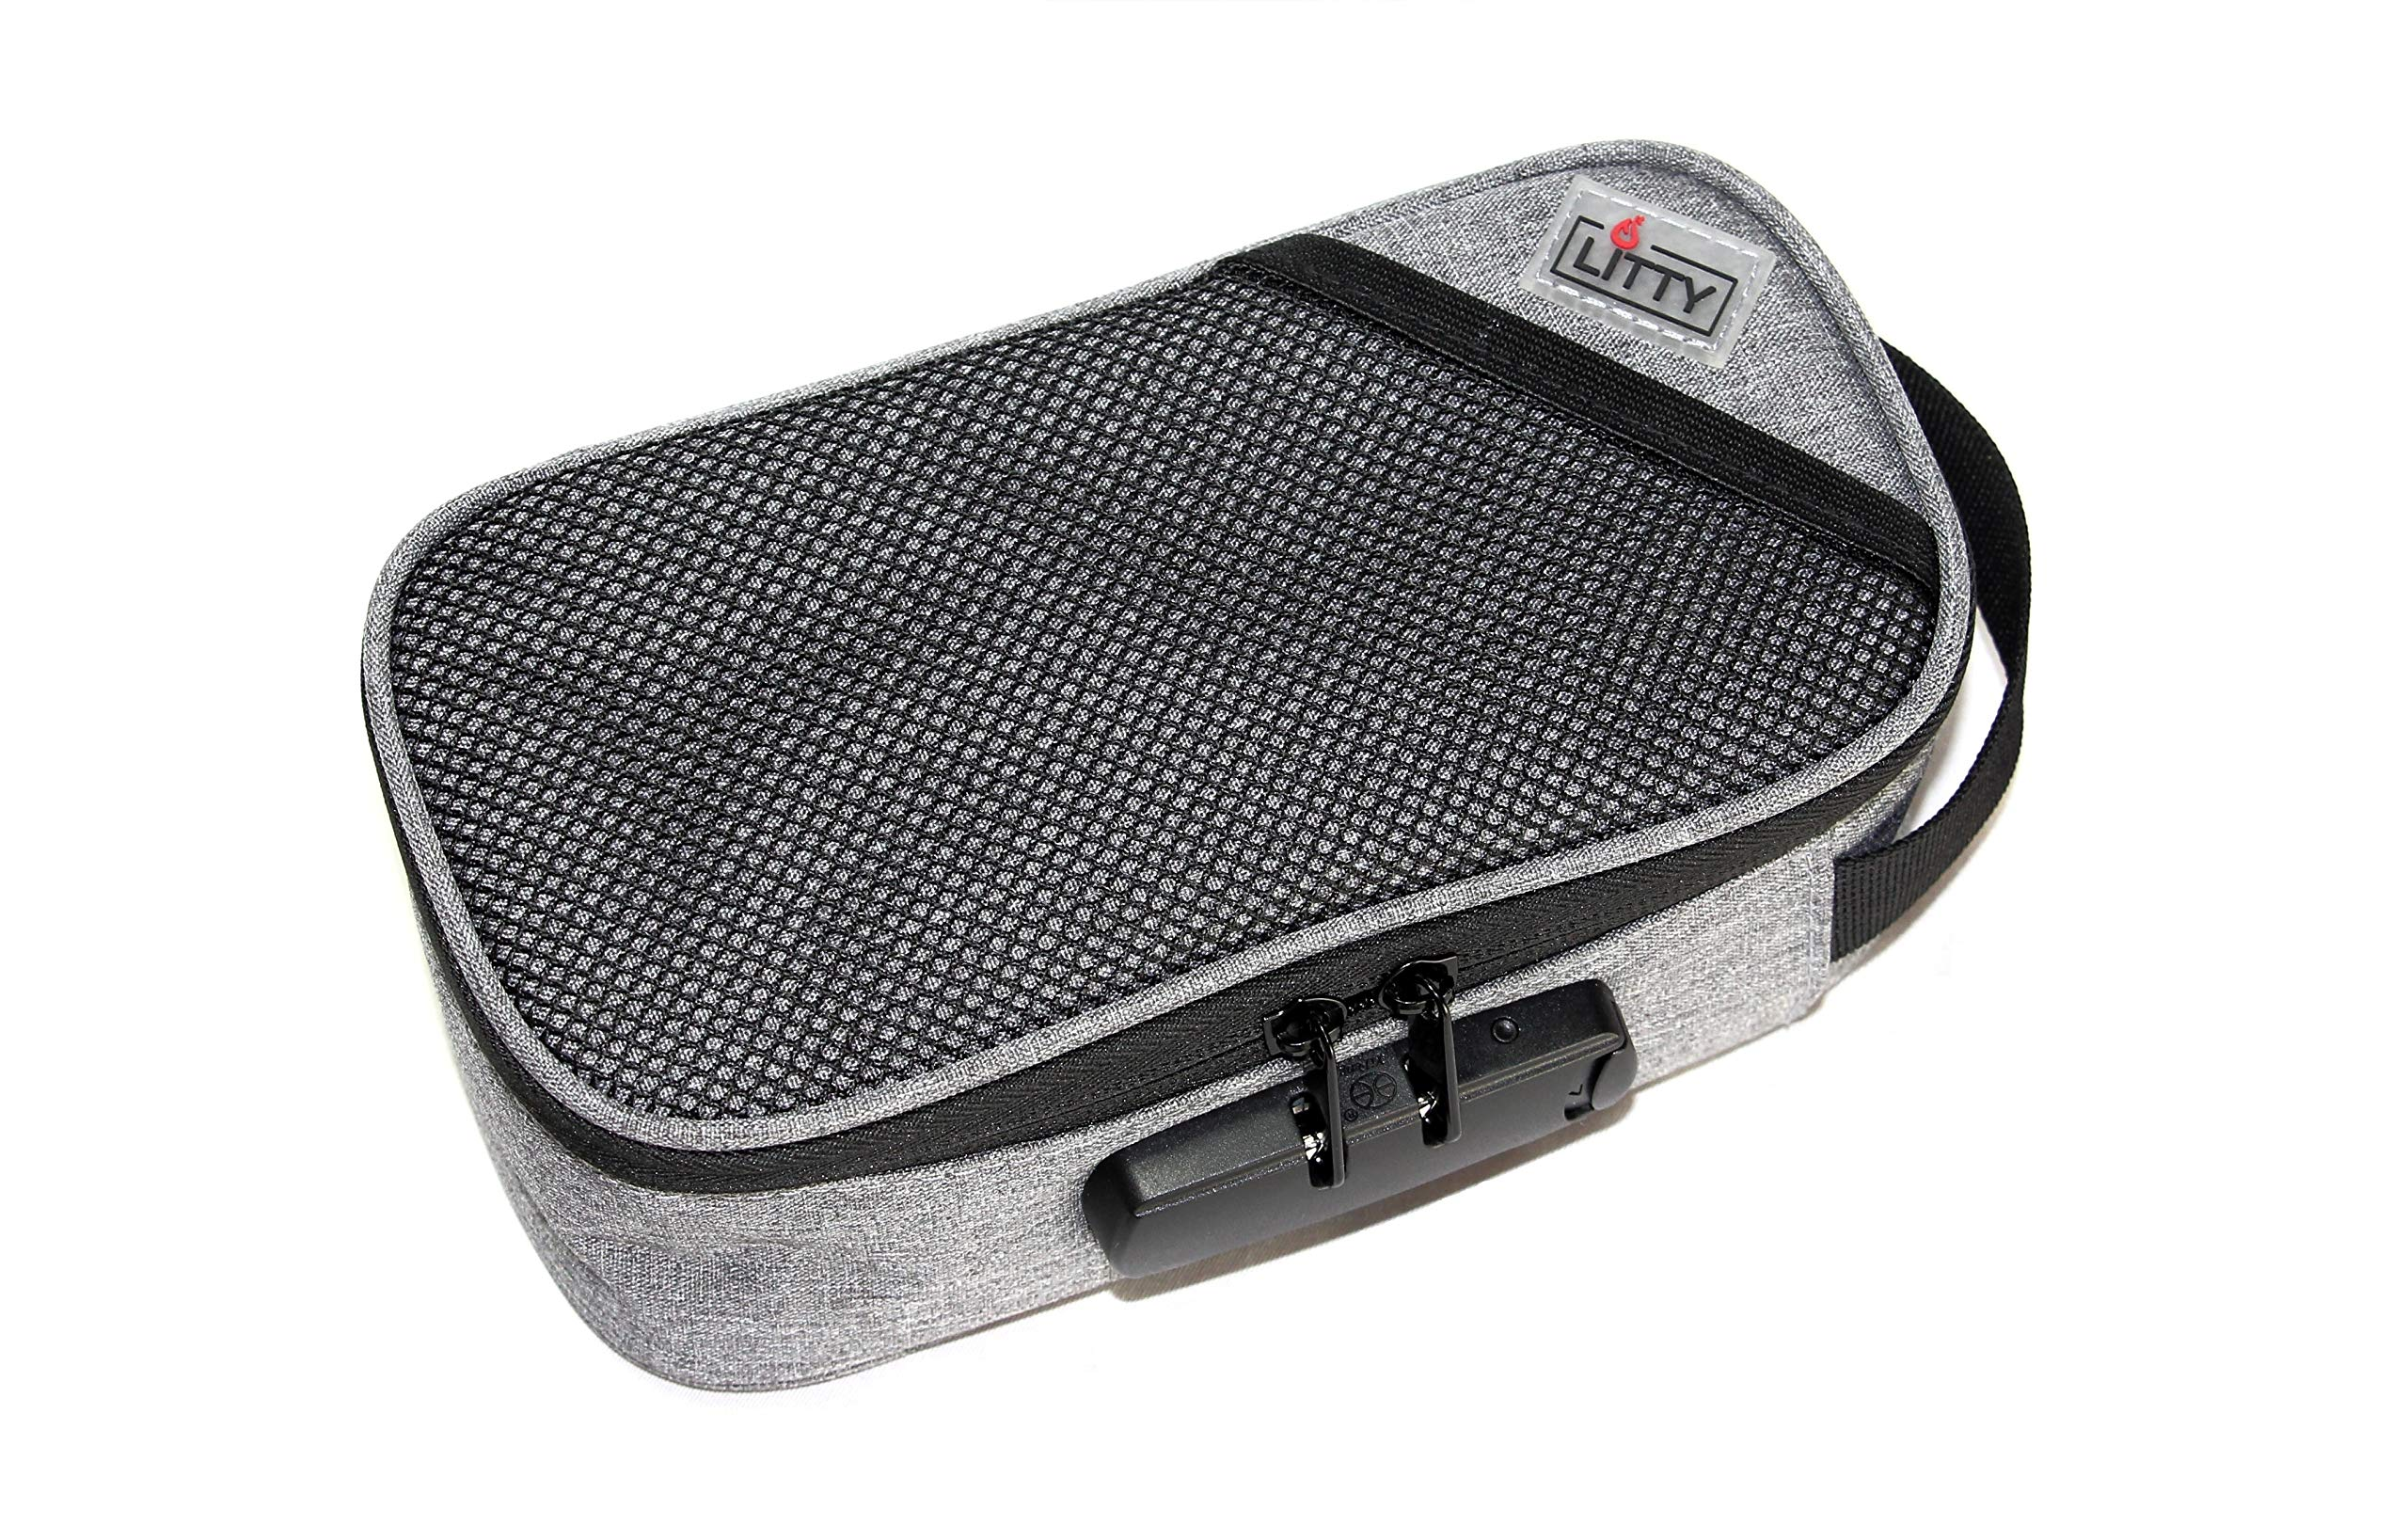 Smell Proof Case with Combination Lock | Premium Carbon Lined Odorless Bag | by Litty (Gray)